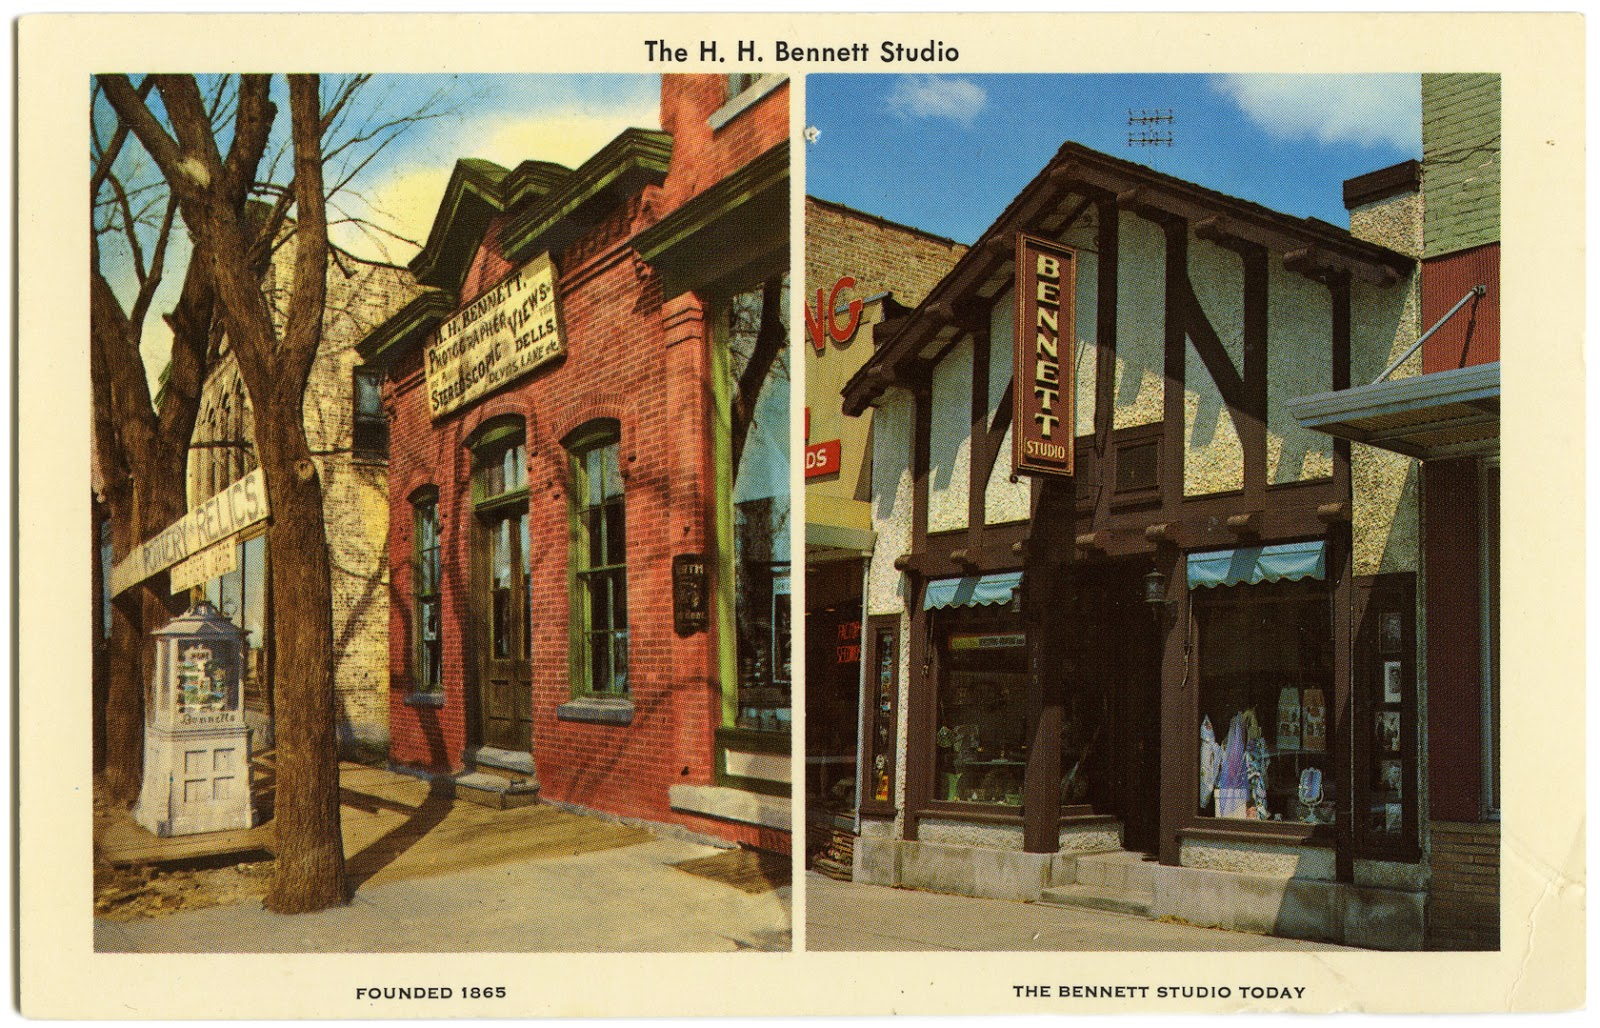 Capones the Original Old fashioned pictures wisconsin dells